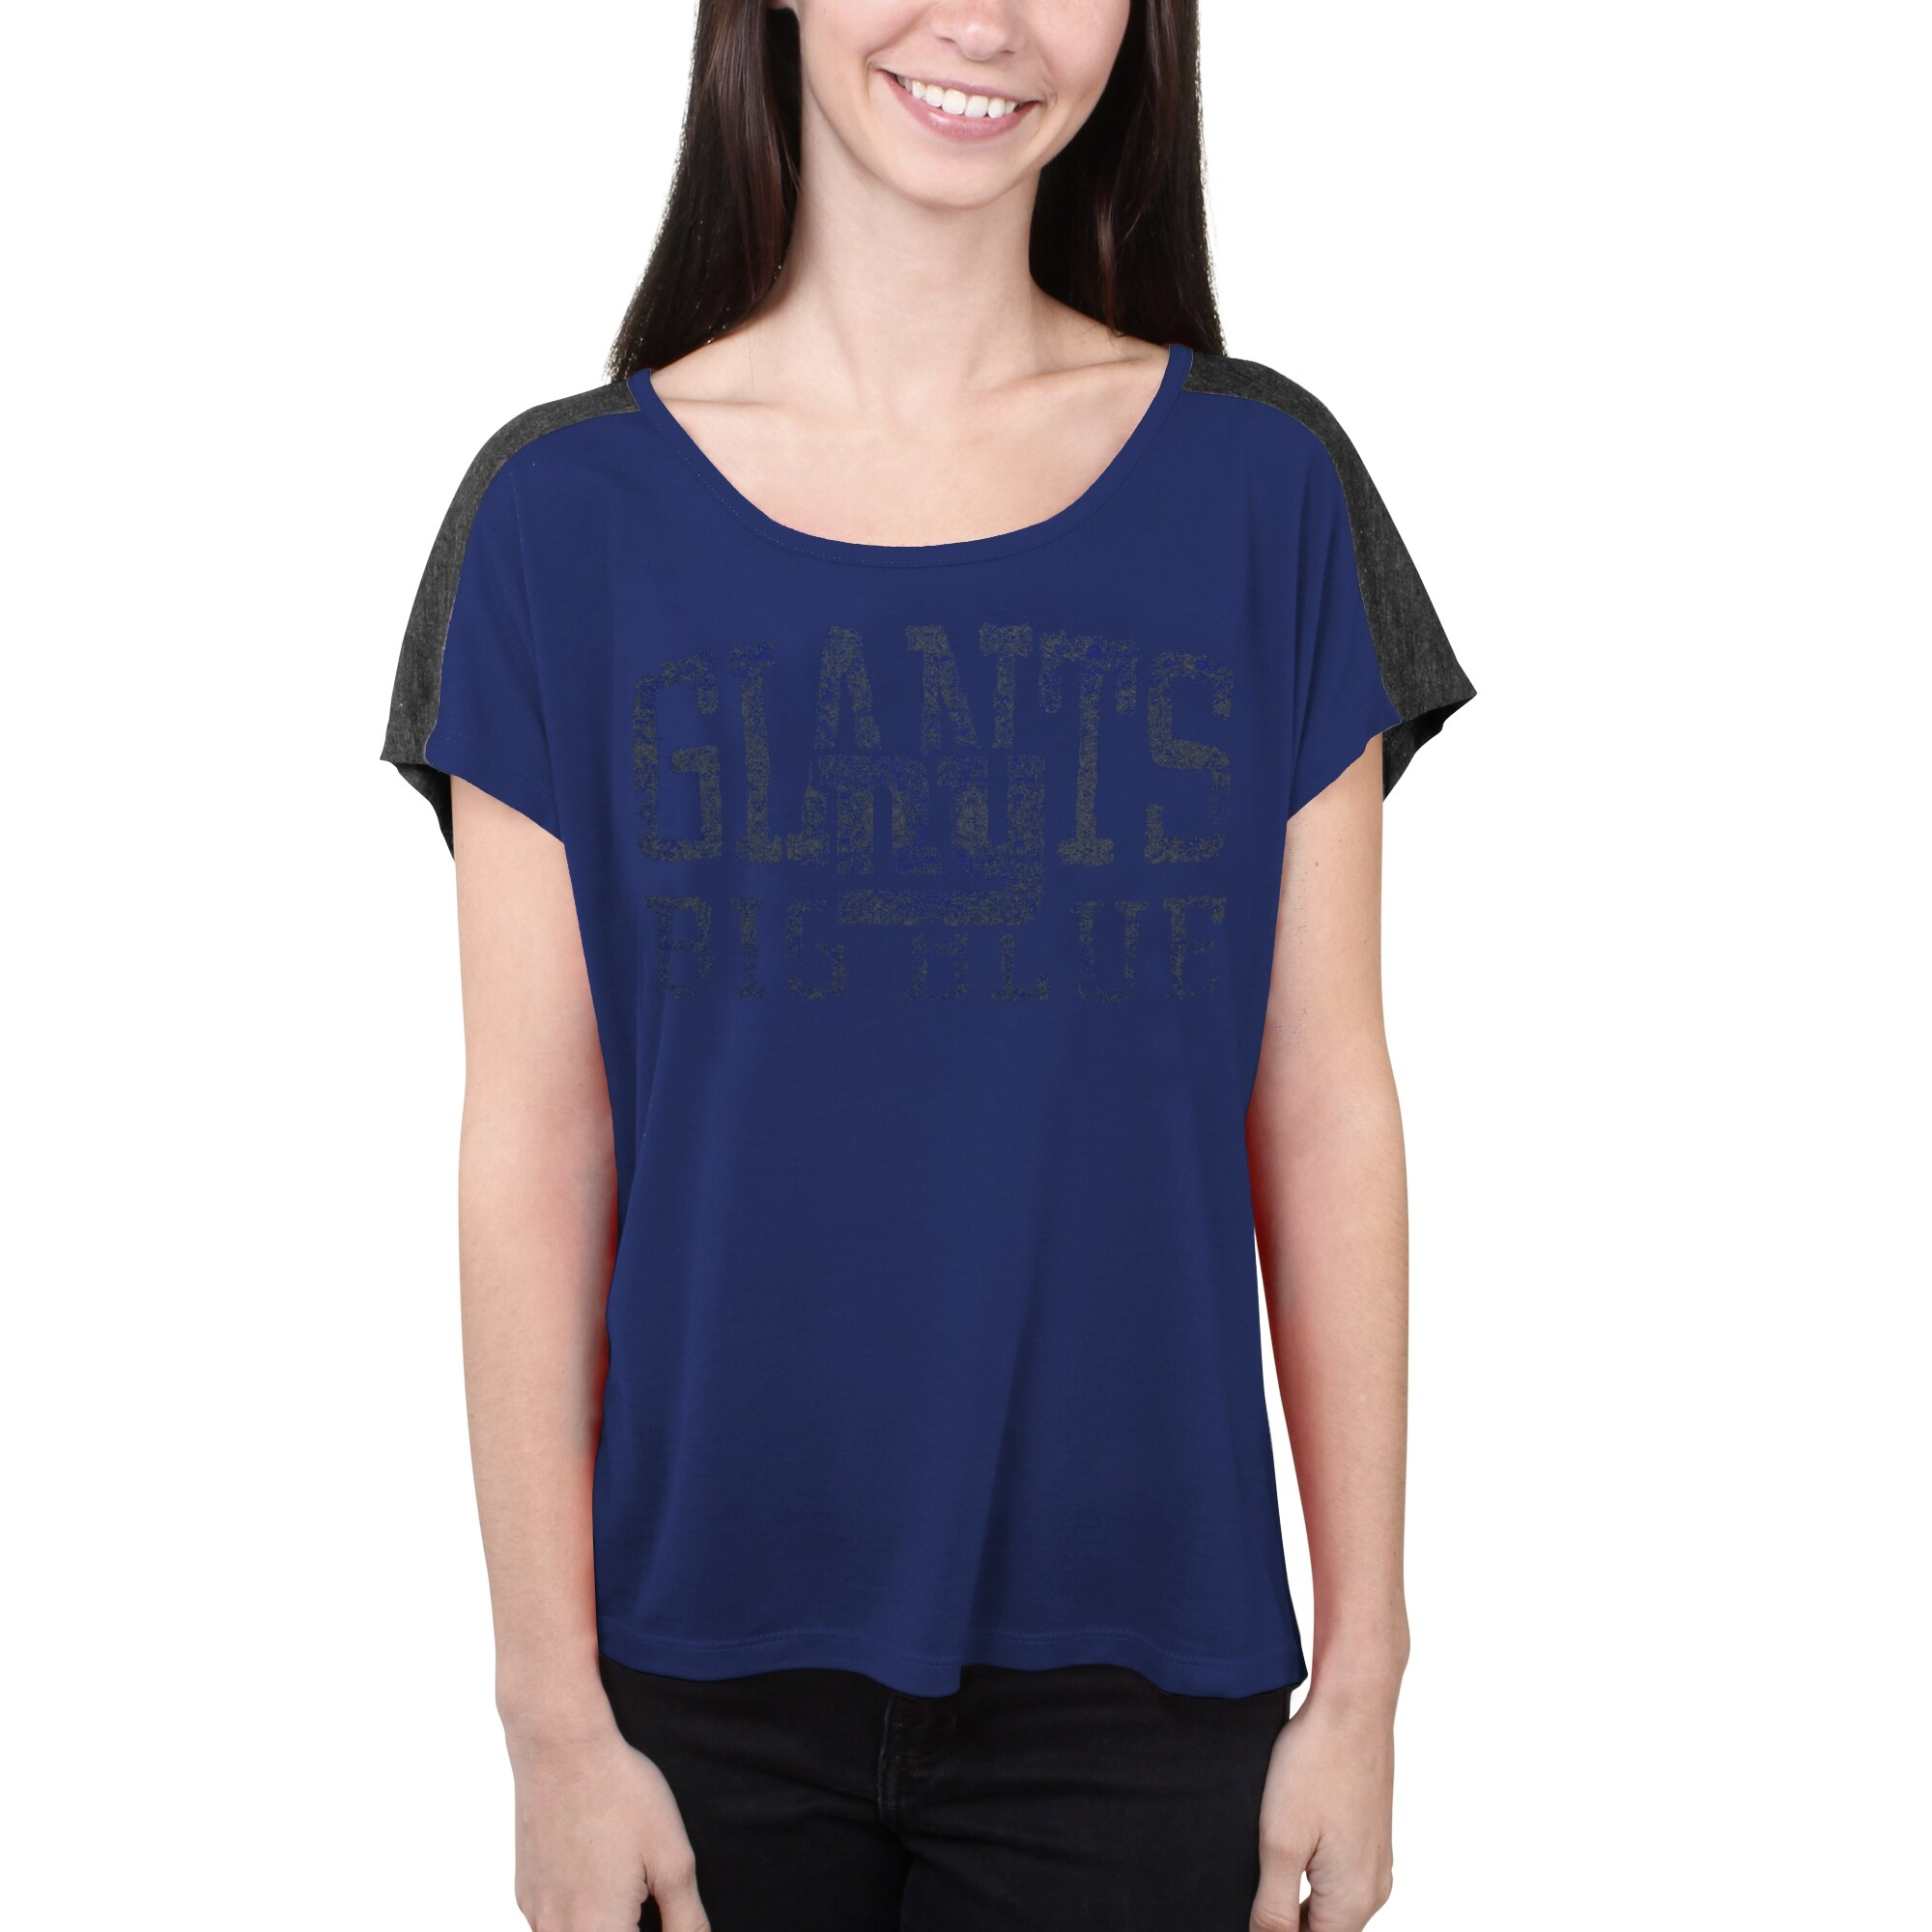 New York Giants Majestic Women's Play For Me T-Shirt - Royal Blue